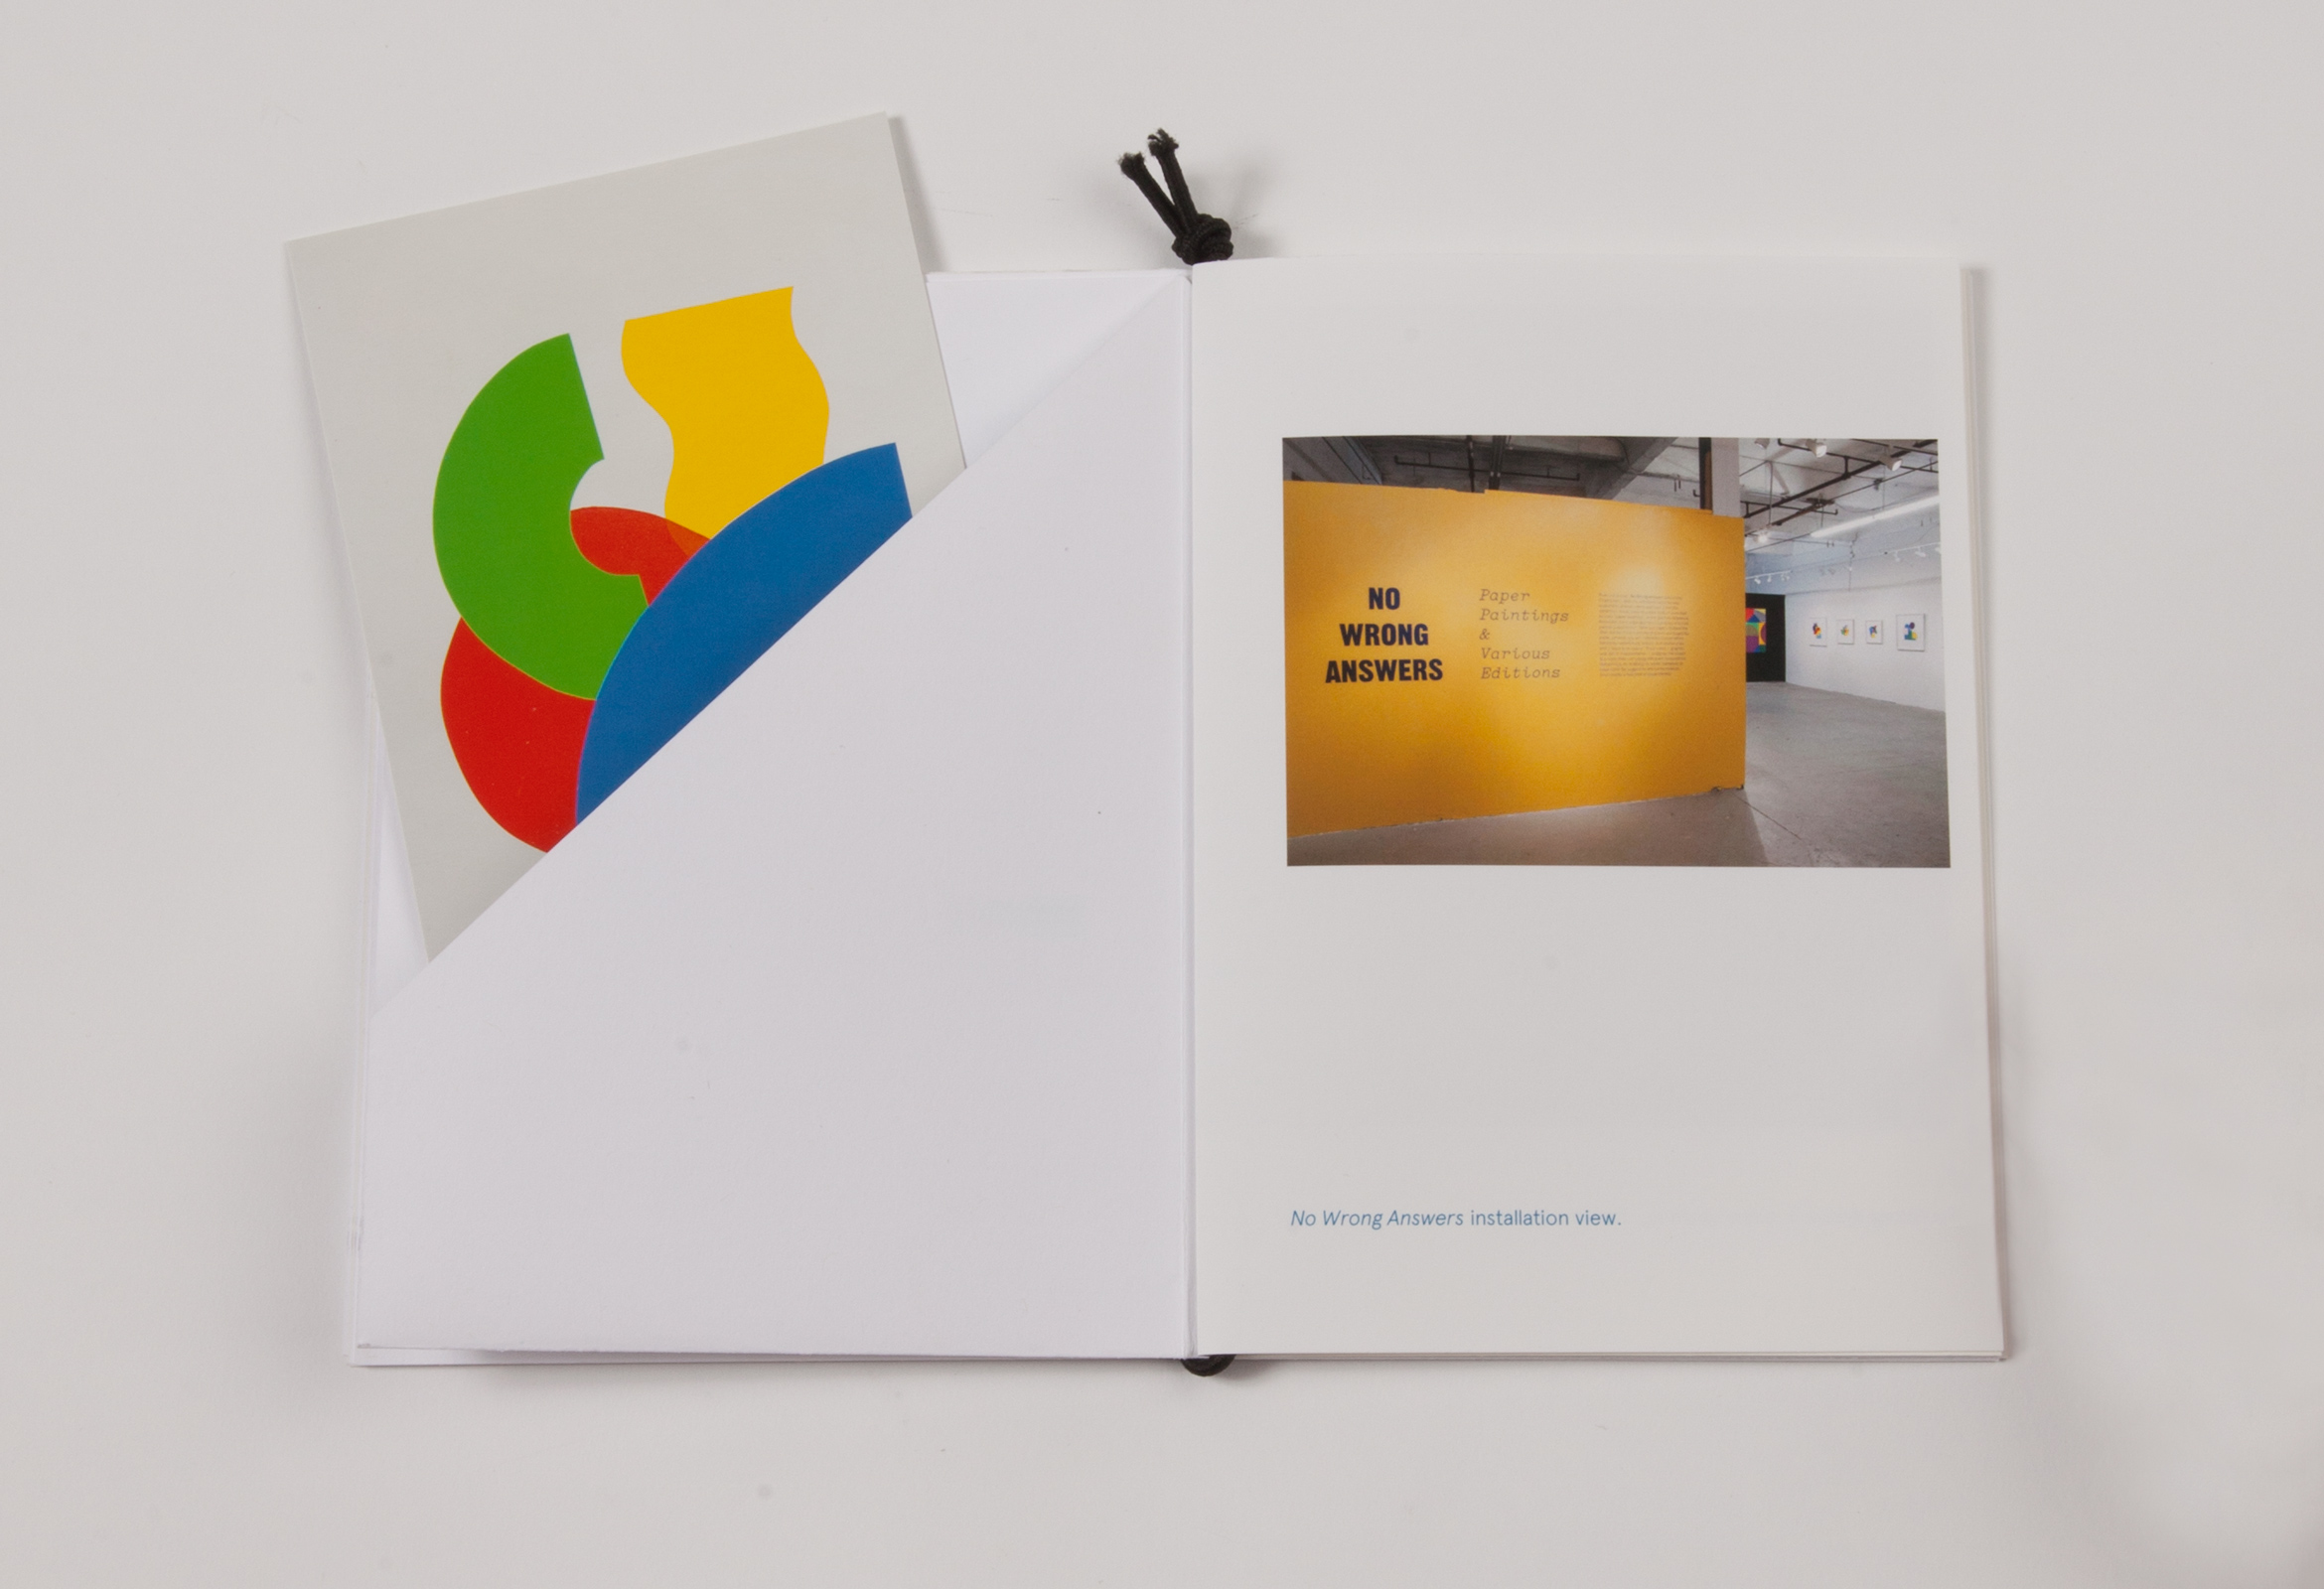 chadkouri-nowronganswers-exhibition-catalog-spread3